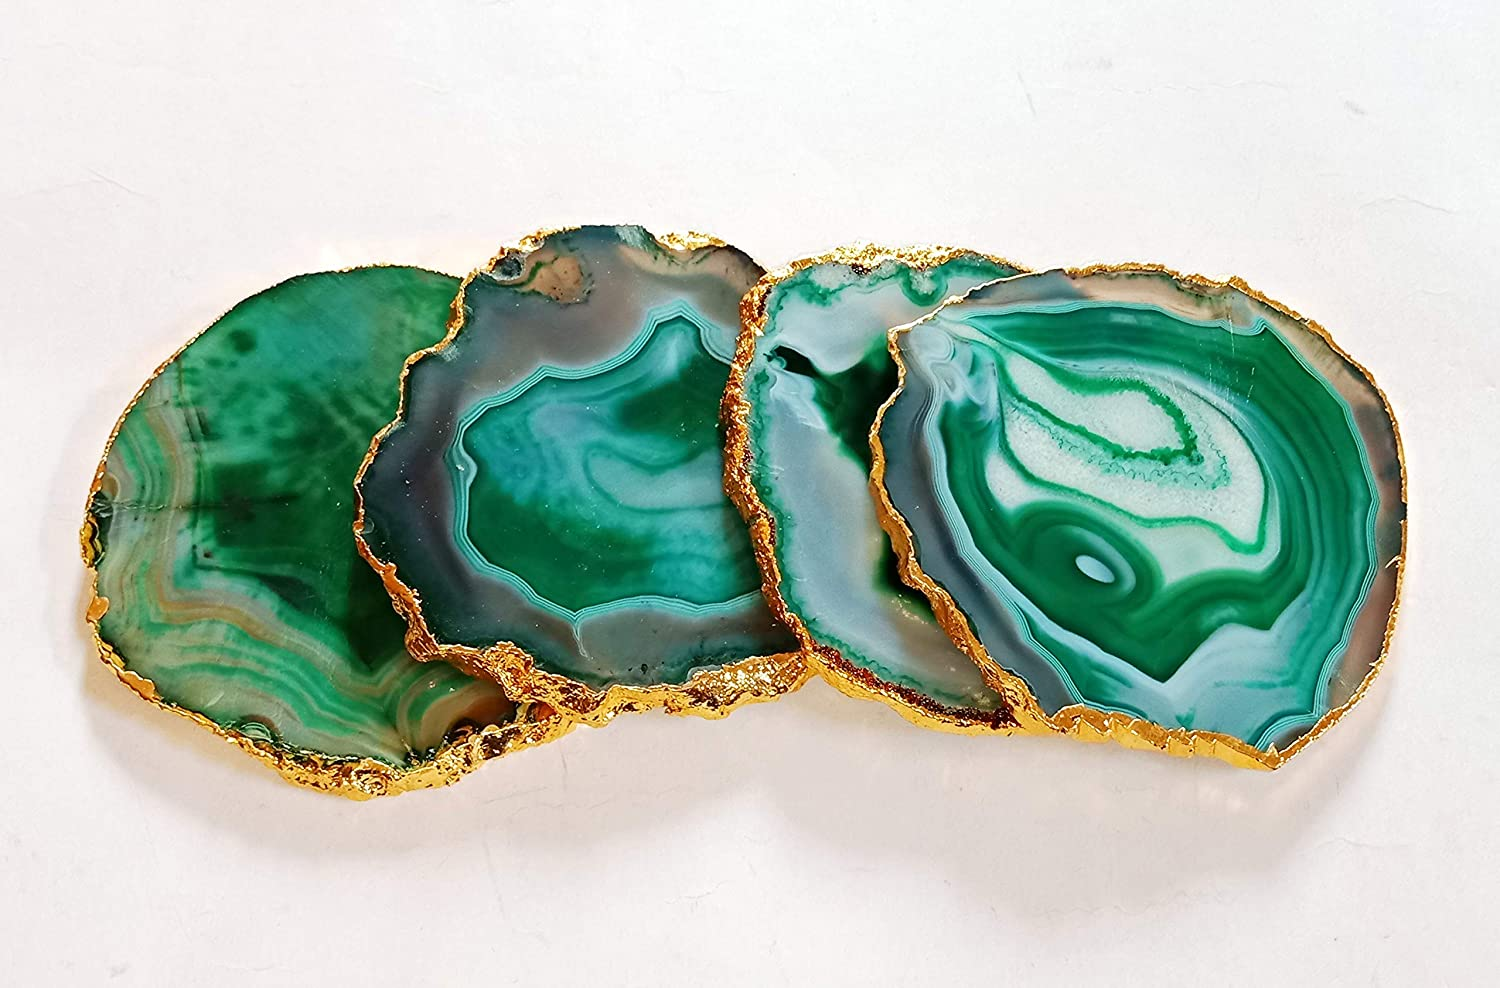 """Green Agate Coaster 3""""-4"""" Slice Genuine Green Coasters Drink Agate Gold Edge with Rubber Bumper Cup Mat Set of 4 Drink Ware Pad Gemstone Coaster Crystal Slice Office Decor"""